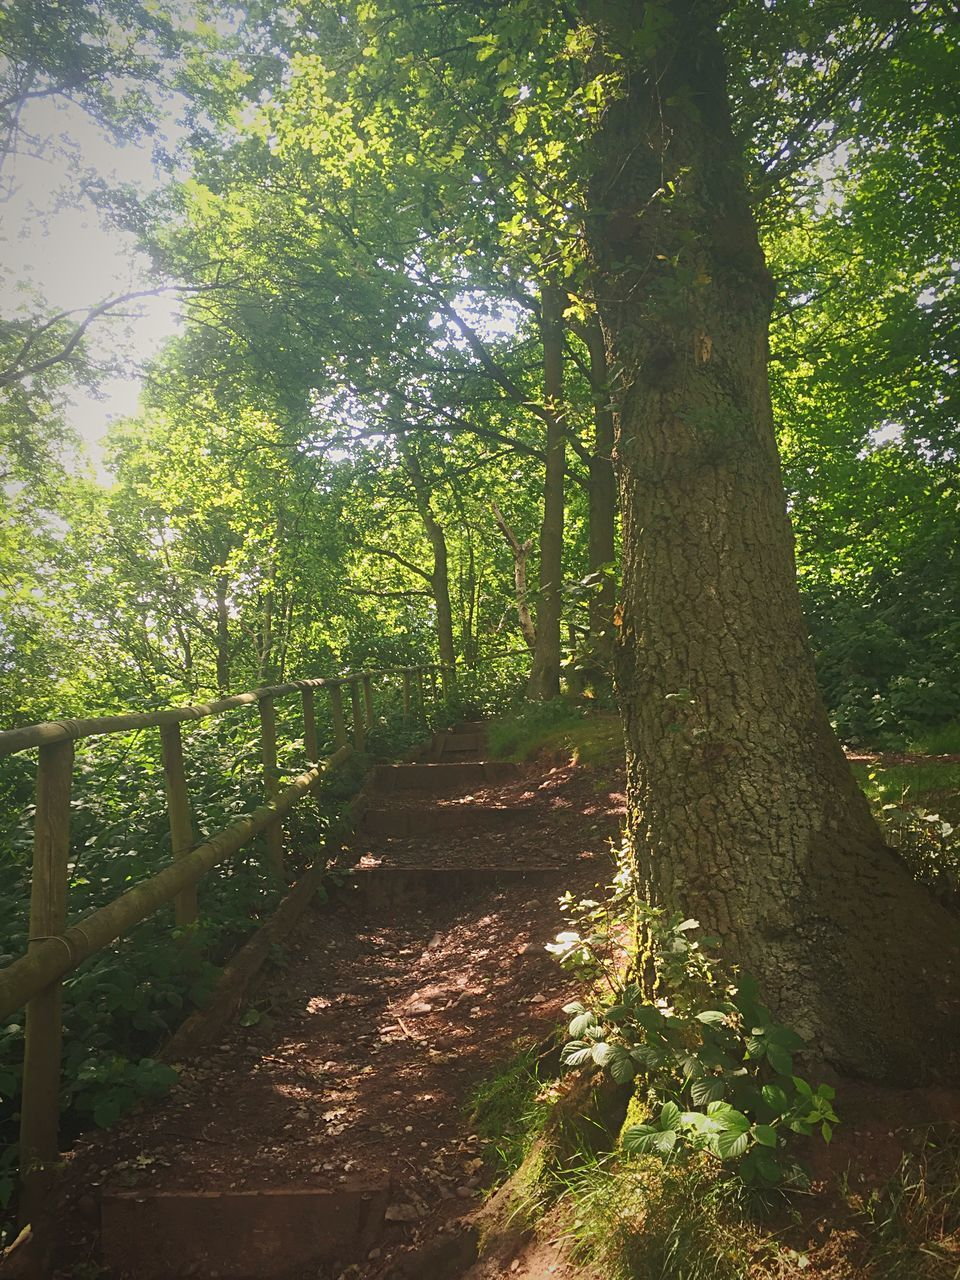 tree, nature, tree trunk, forest, growth, tranquility, sunlight, beauty in nature, tranquil scene, scenics, outdoors, summer, no people, day, landscape, sky